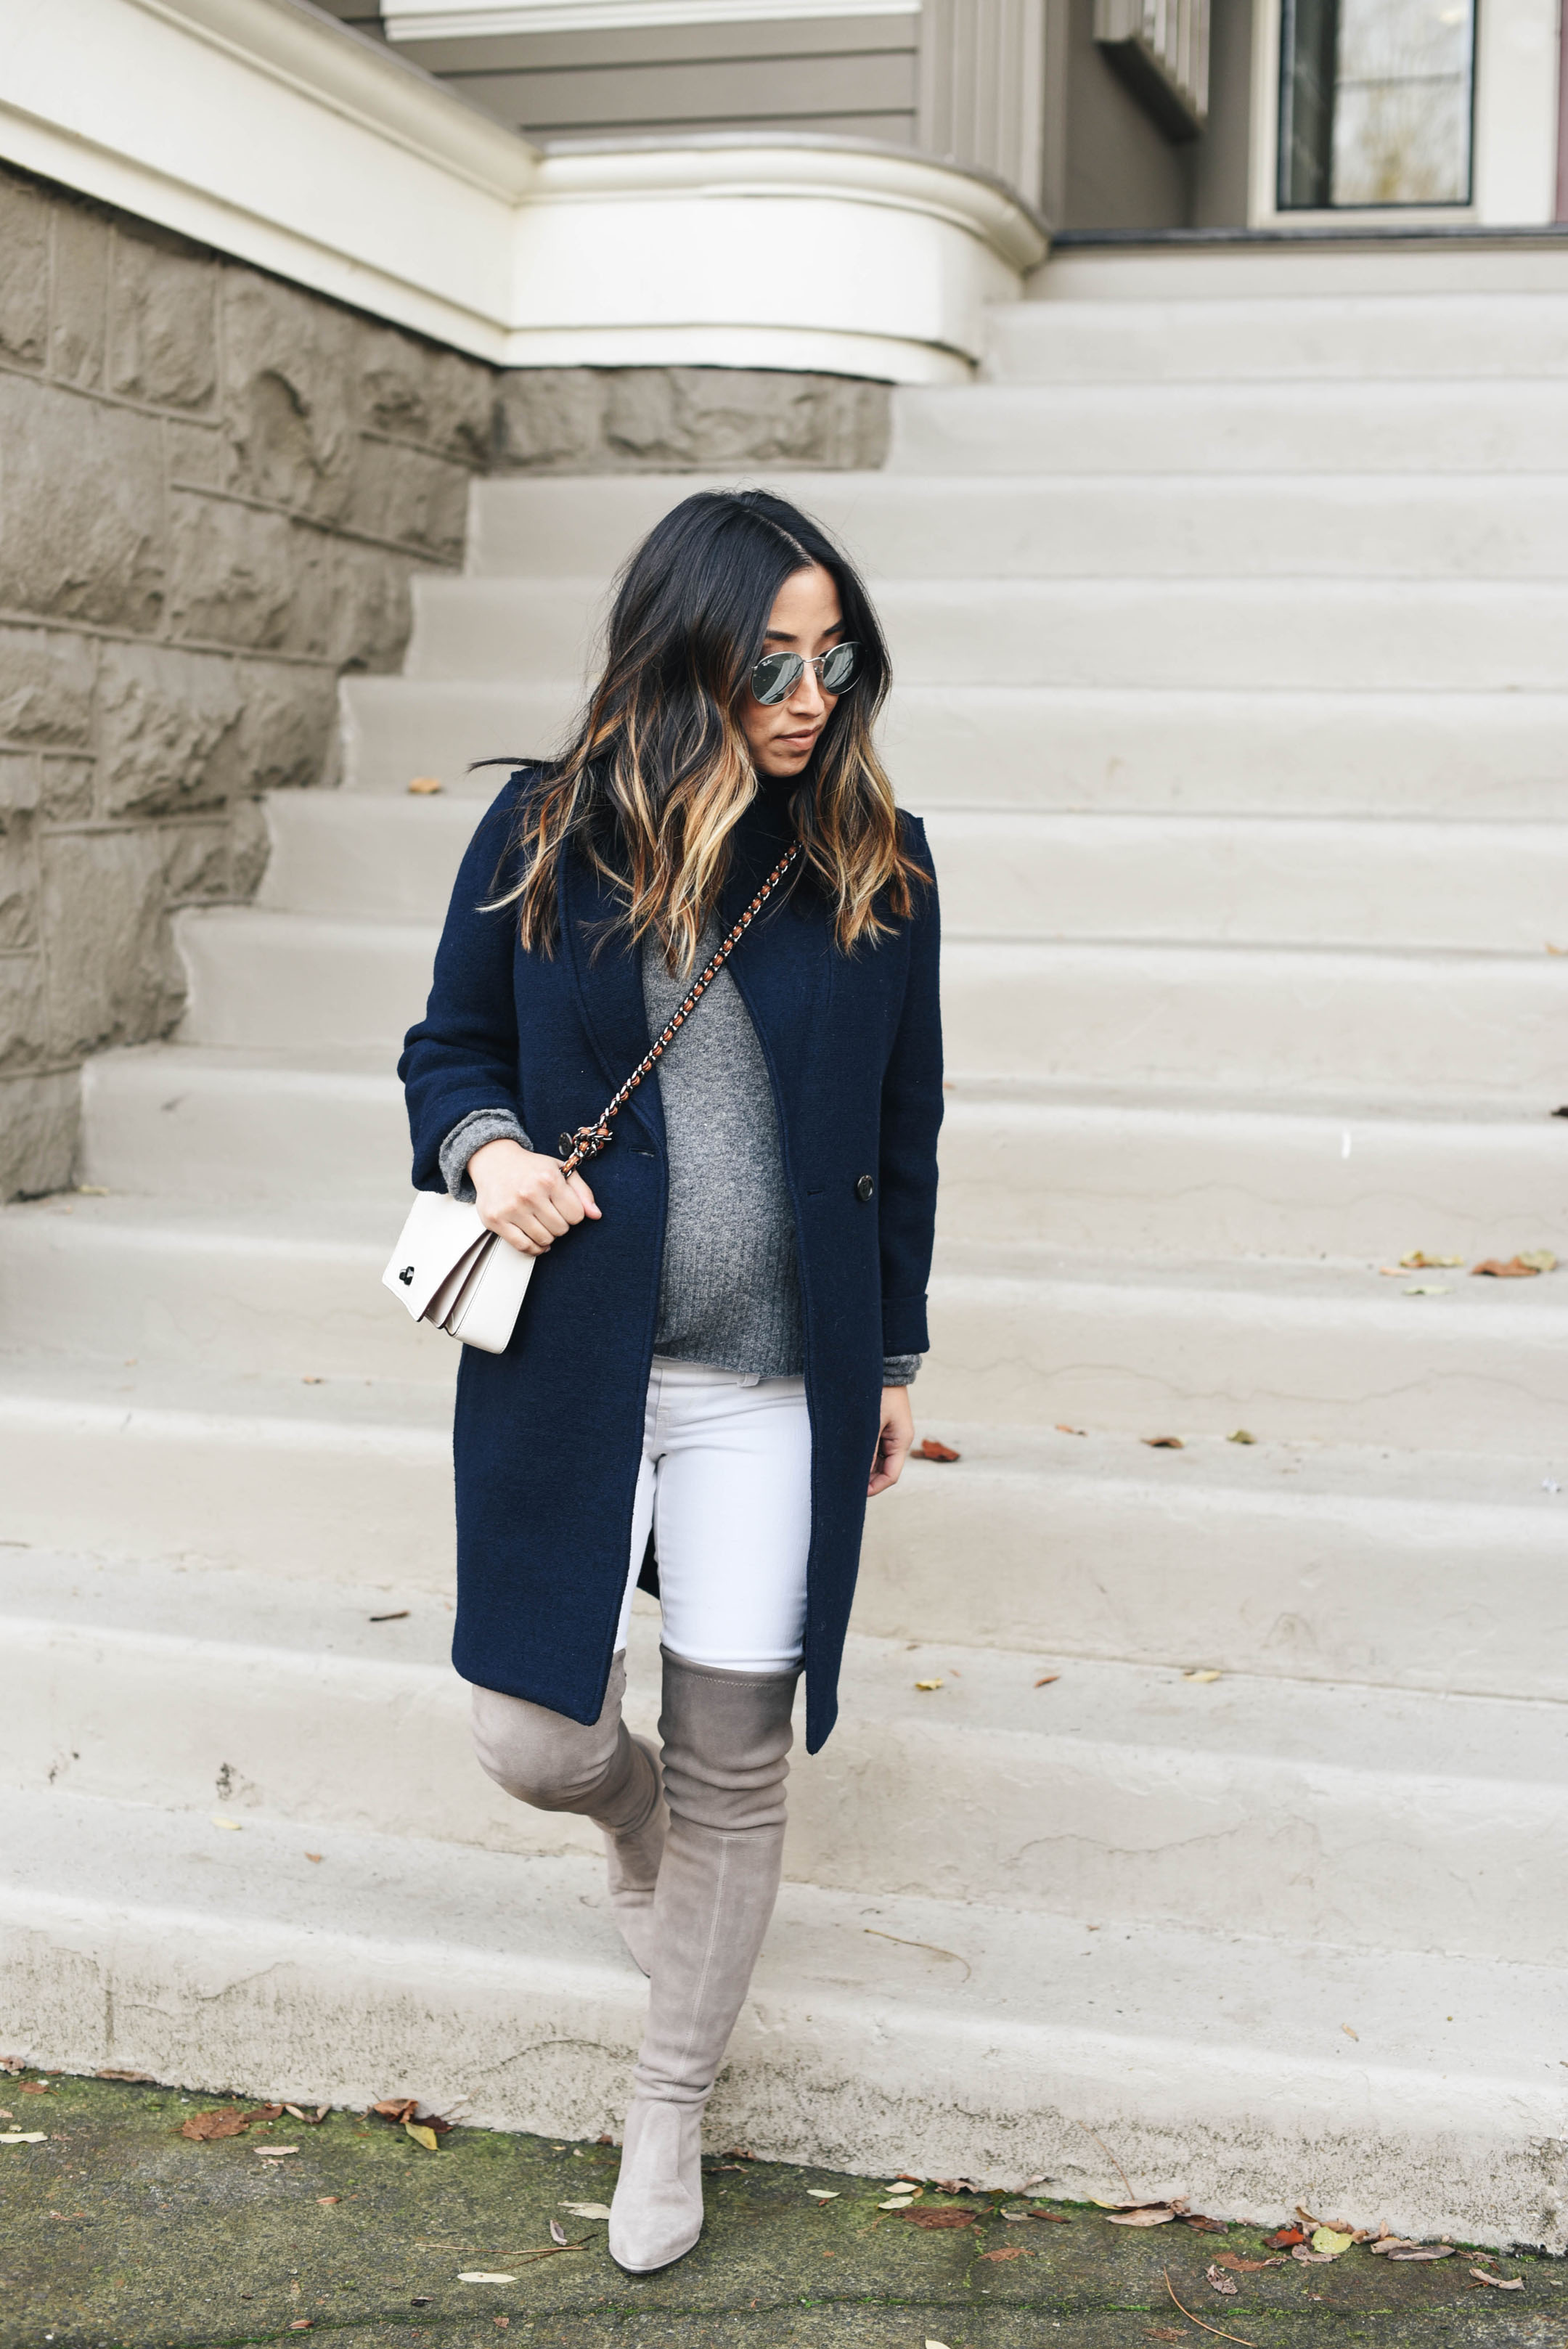 Madewell white maternity jeans